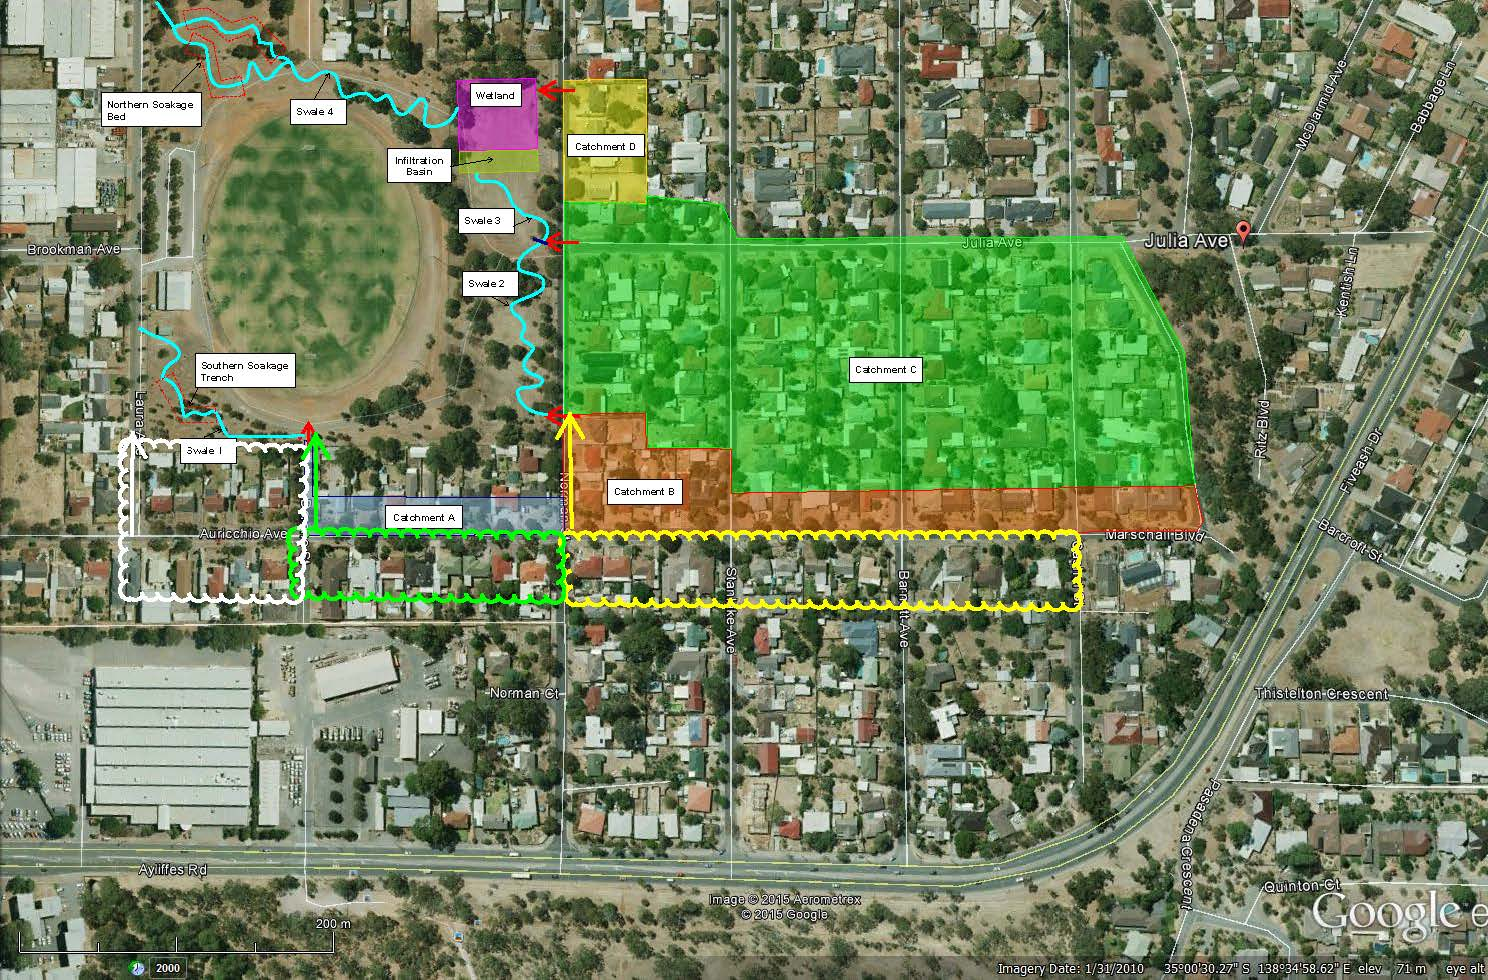 Norman Reserve St Marys residential catchment